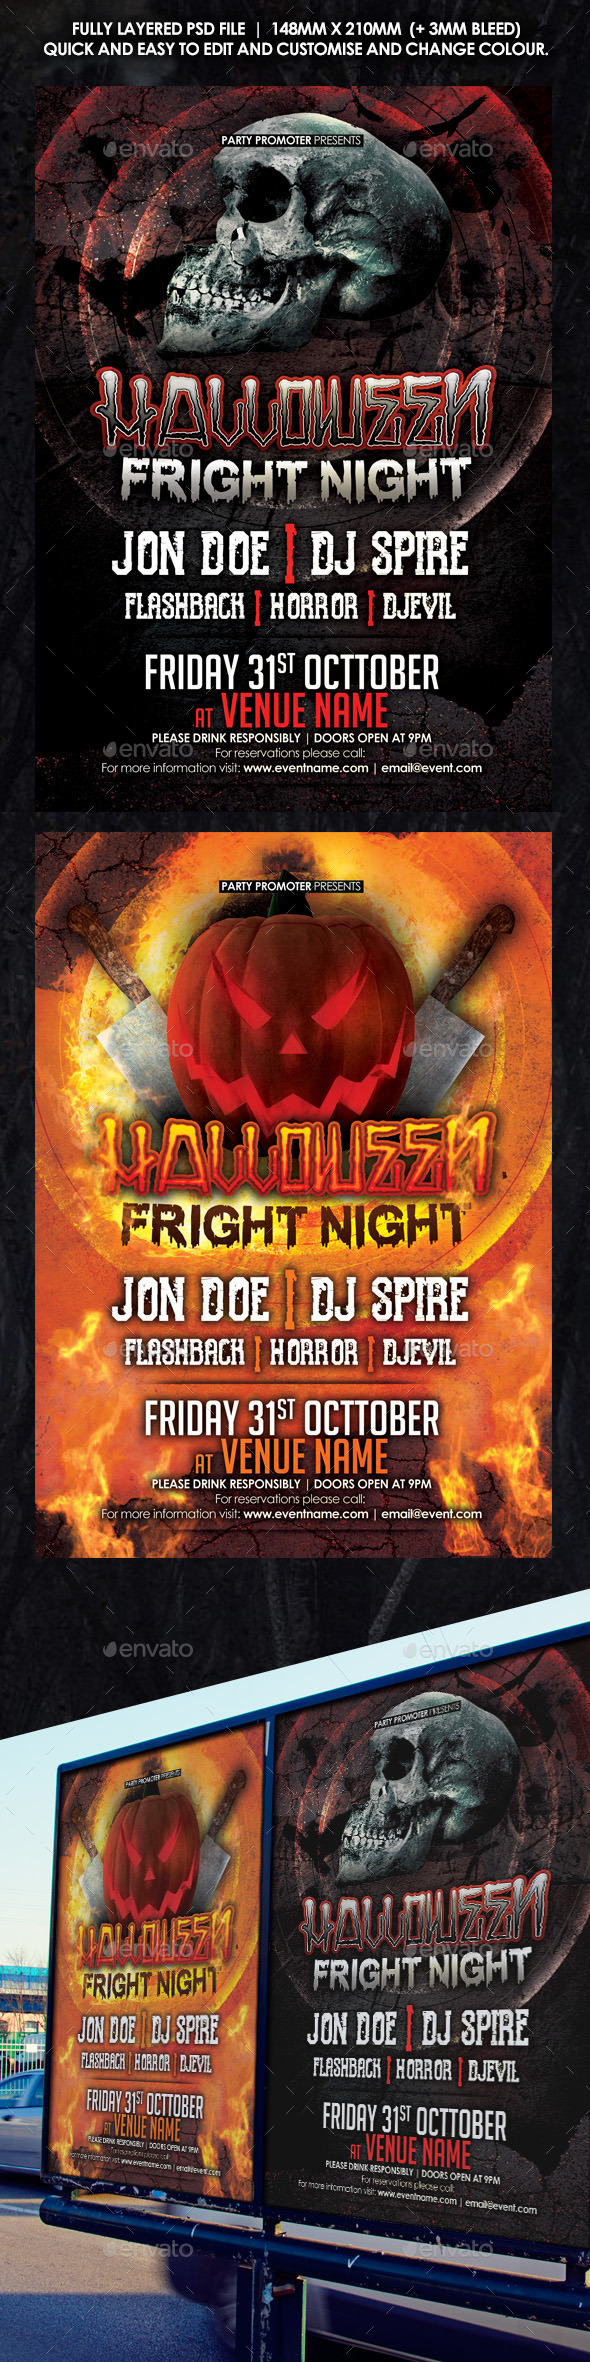 Halloween Fright Night Two Flyer Pack - Holidays Events